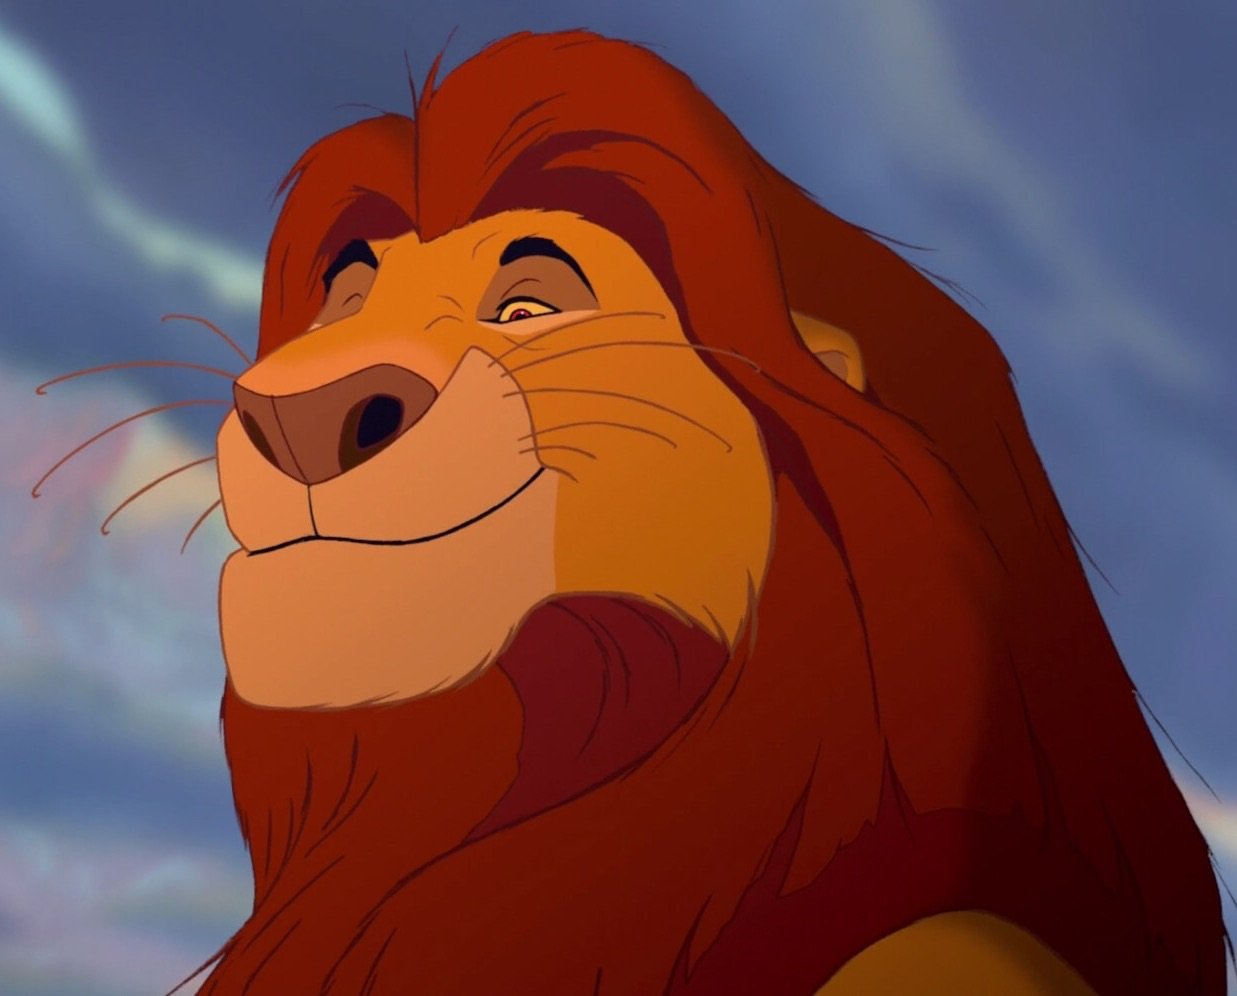 Mufasa Lion King 25 Movie Heroes Who Were Actually Kind of the Villain